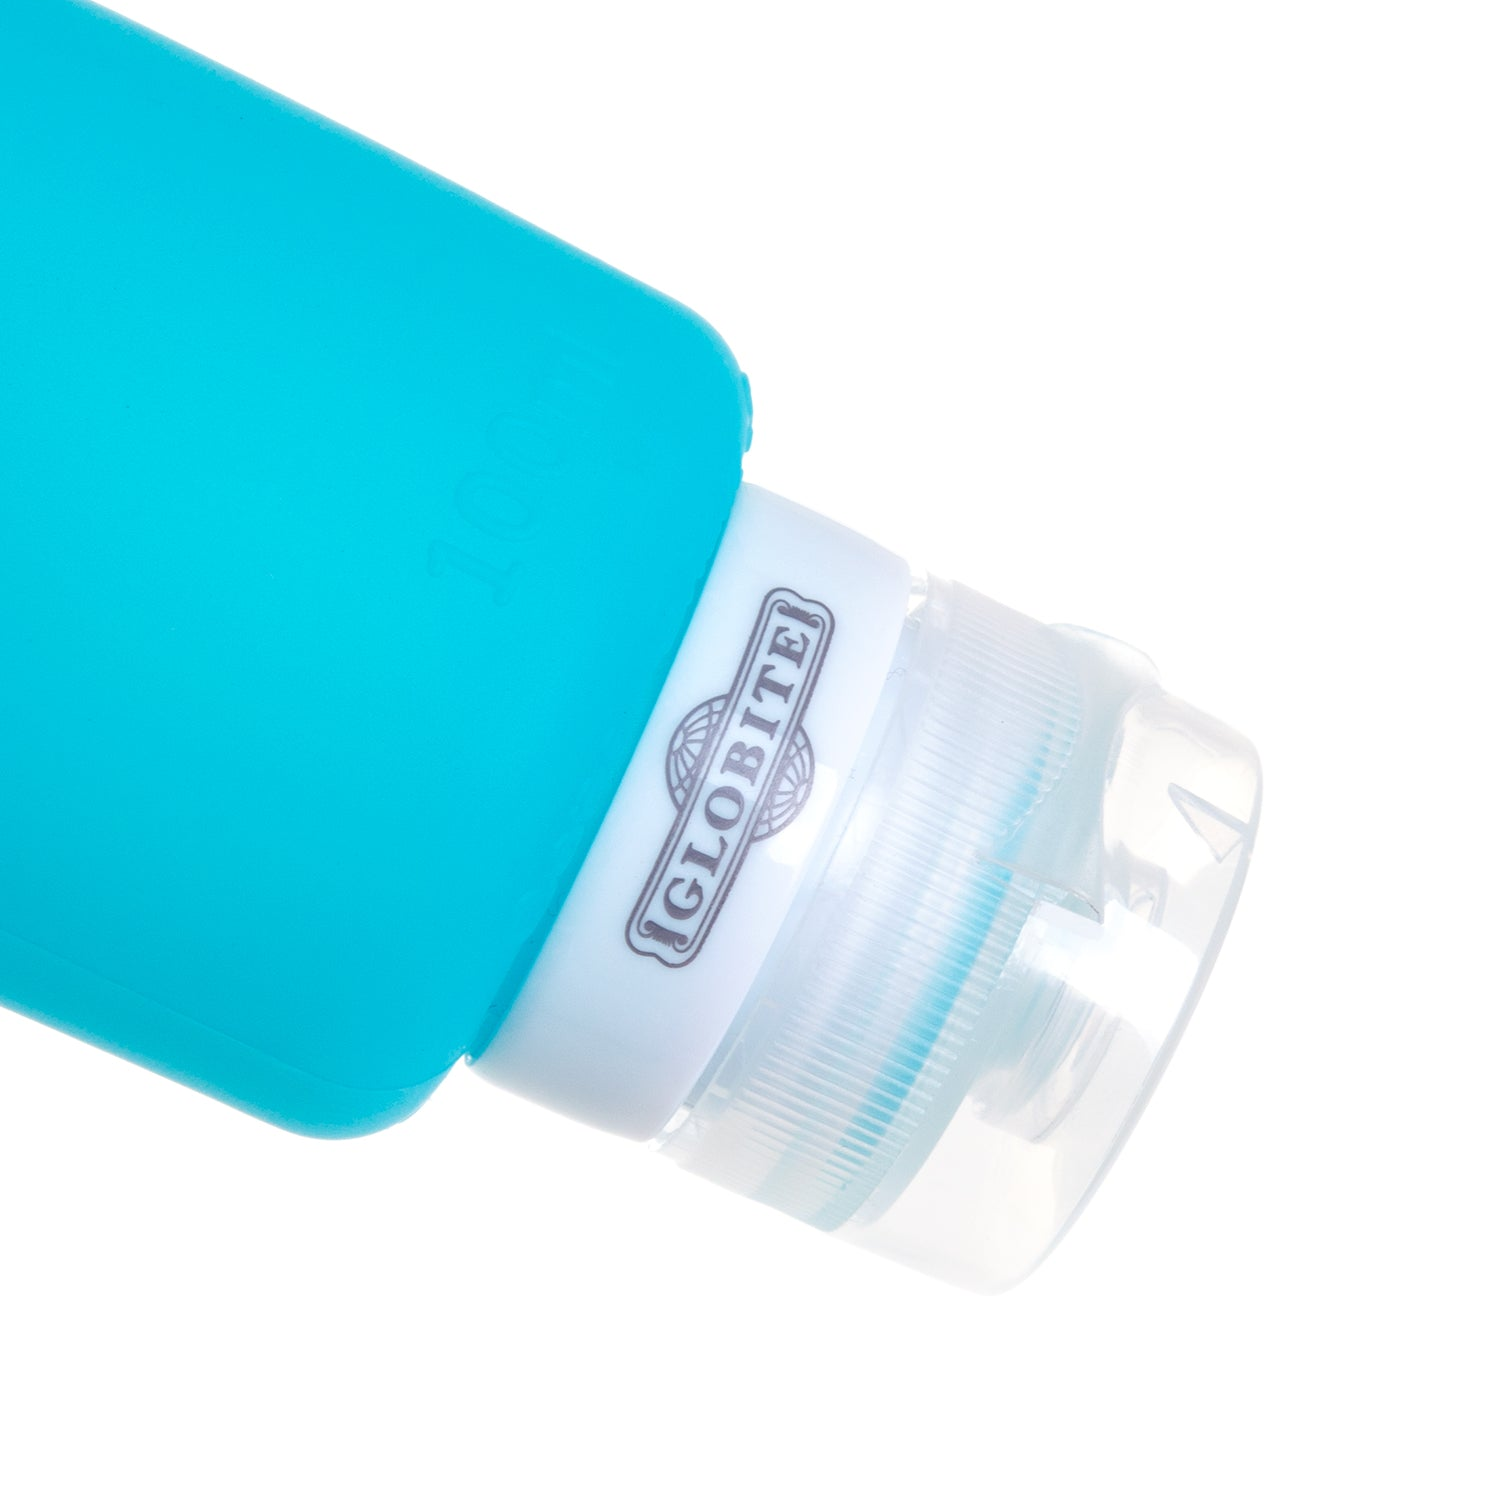 Silicone Travel Bottles 2pk - 100mL - globitetravel